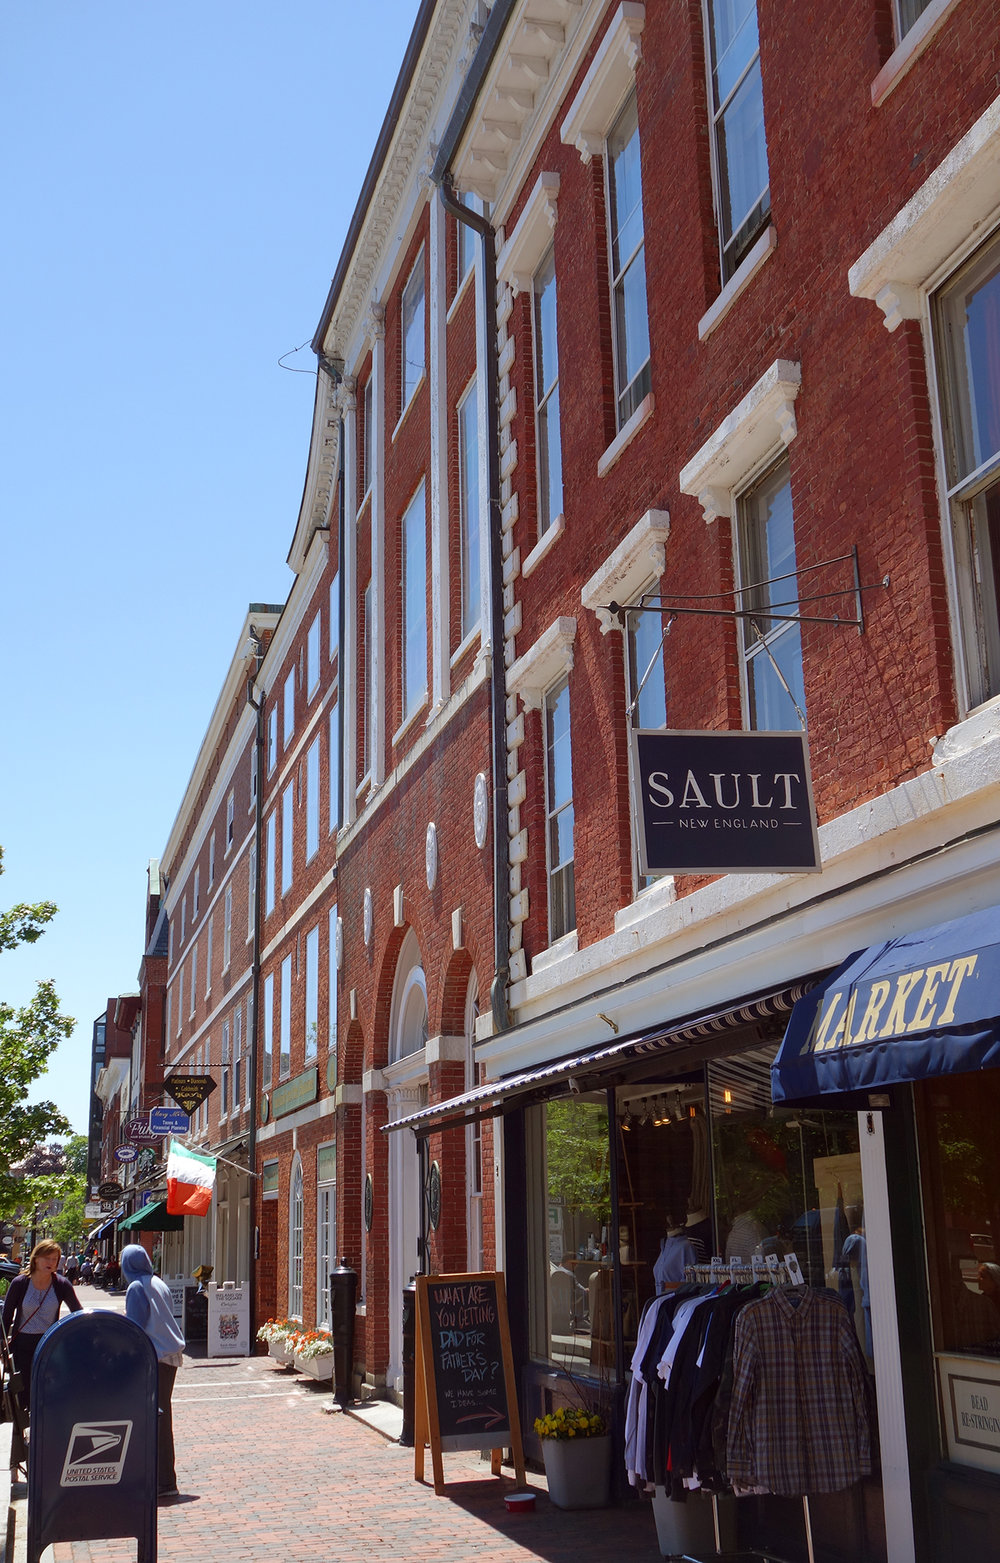 Downtown Portsmouth, Sault New England, Shopping, Restaurants, Lively, Portsmouth, New Hampshire